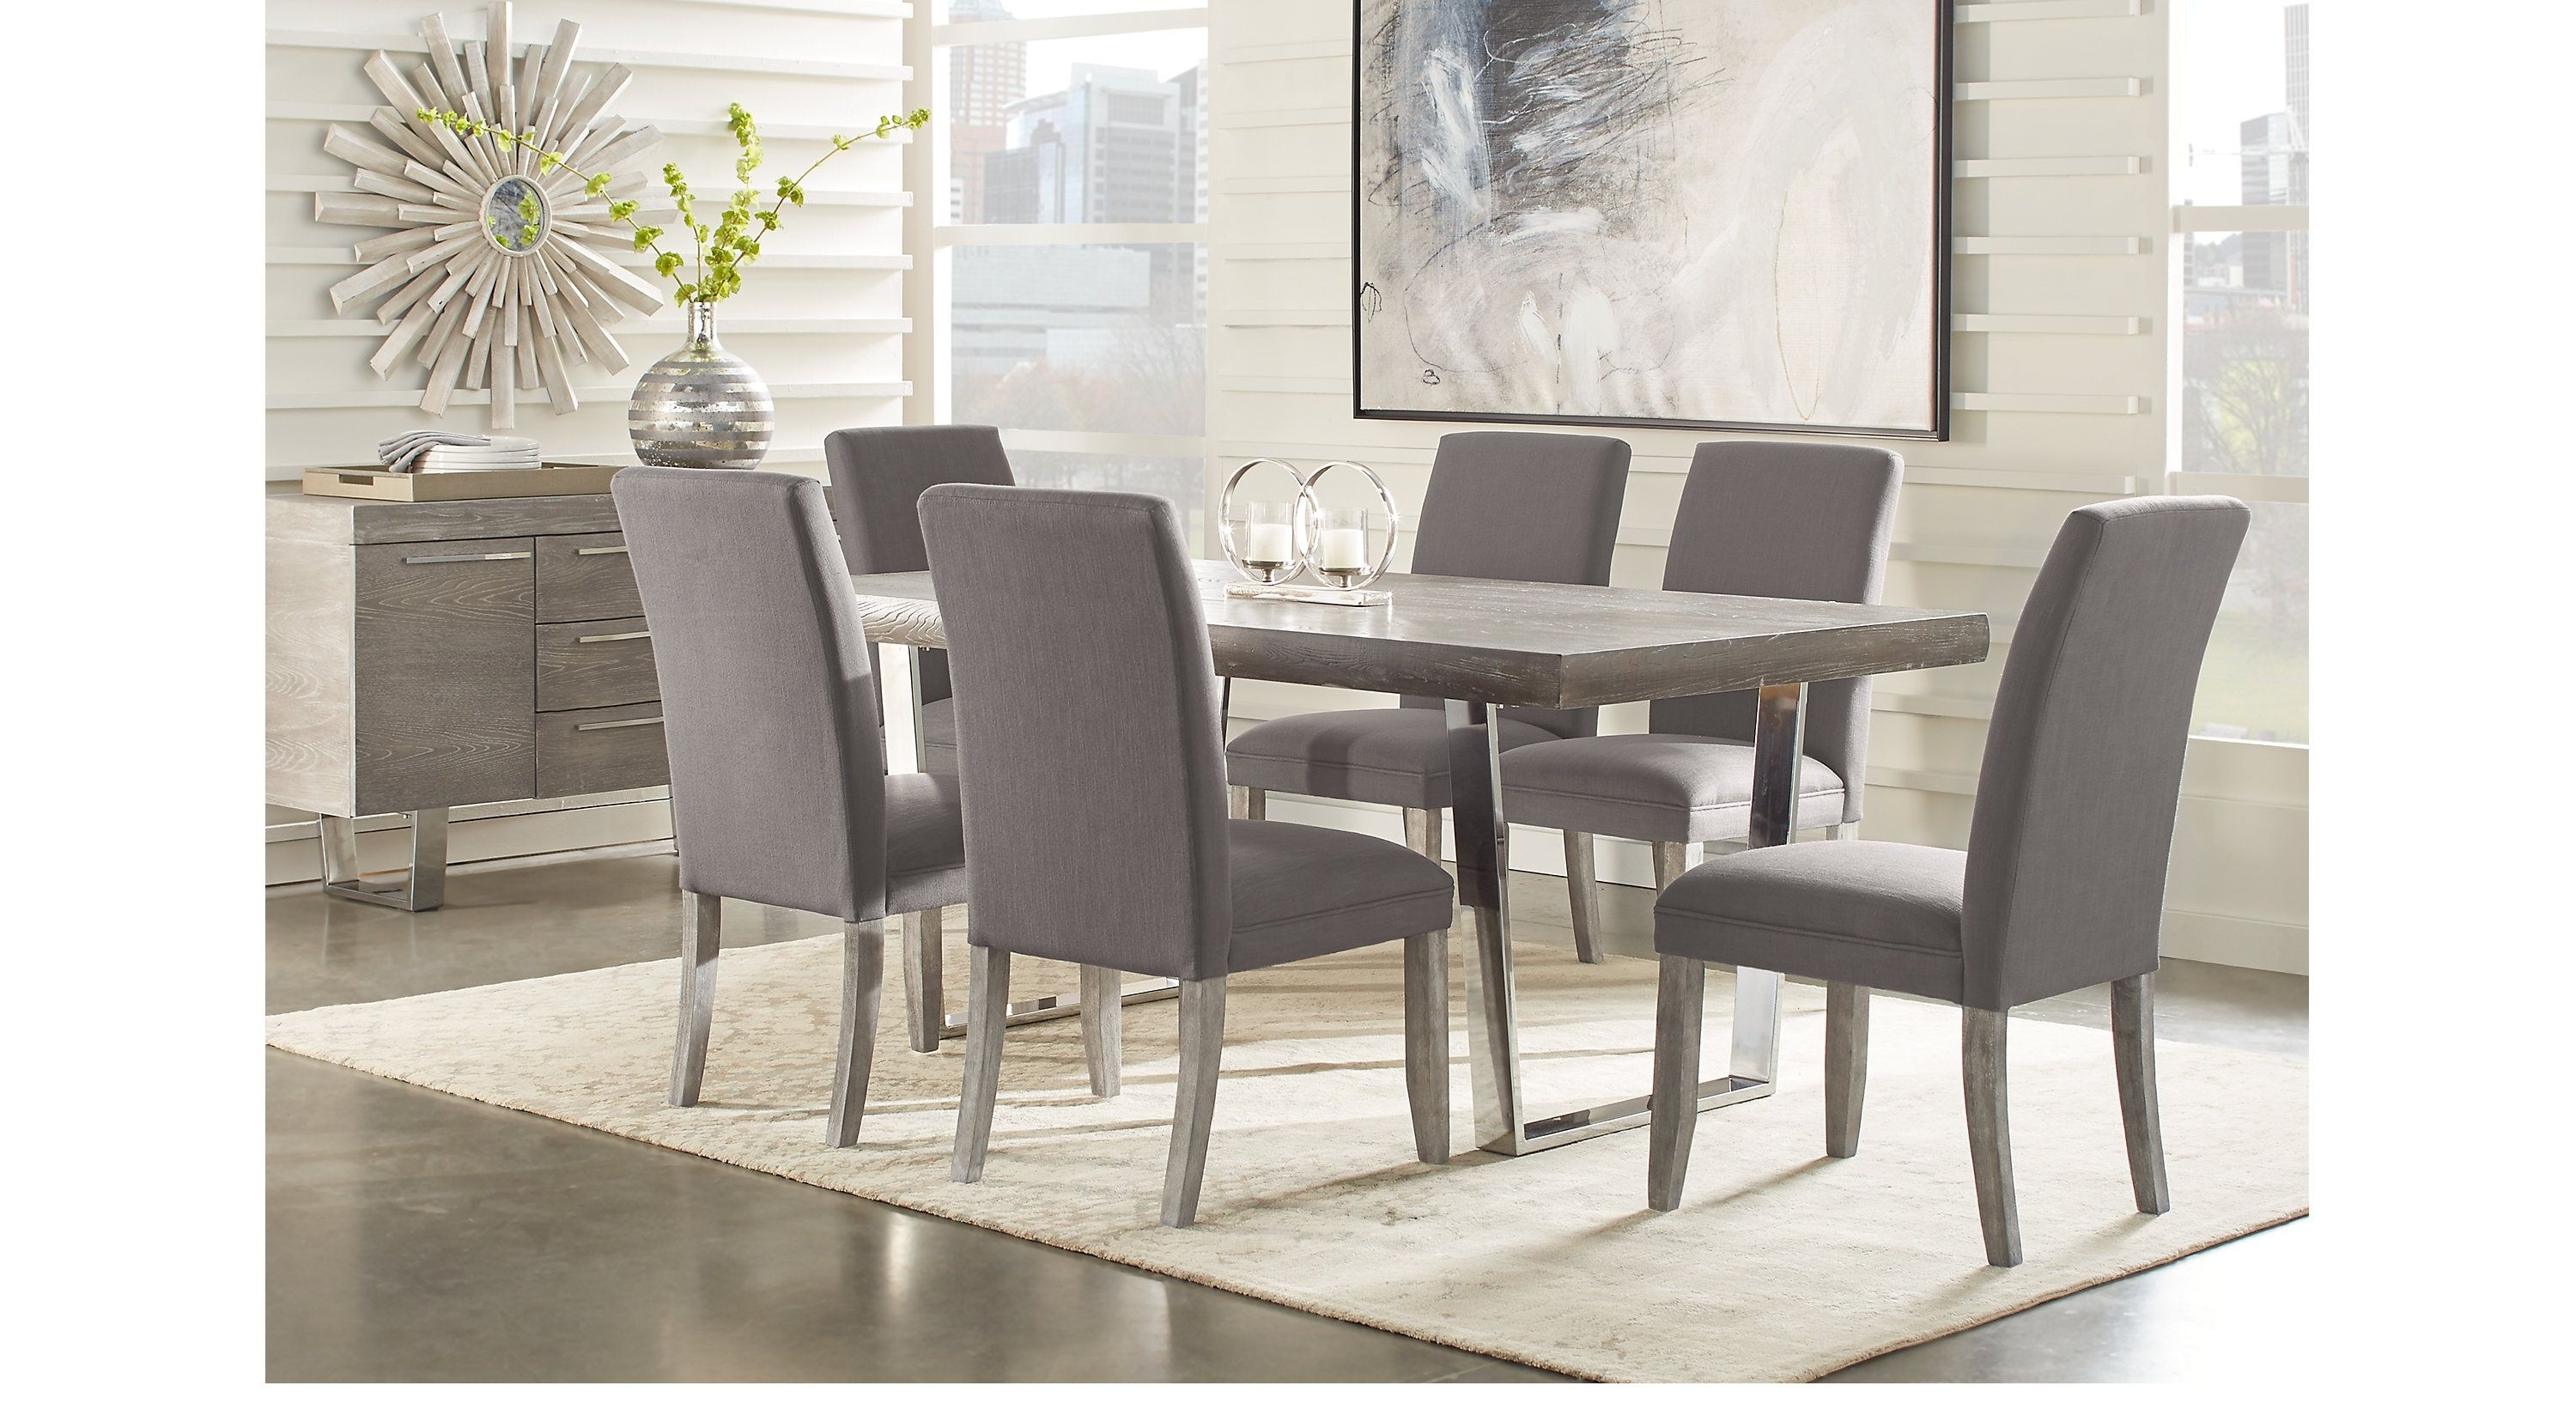 2018 Jaxon Grey 6 Piece Rectangle Extension Dining Sets With Bench & Wood Chairs With Regard To Besteneer Rectangular Dining Room Table Dark Gray – Signat (View 20 of 25)